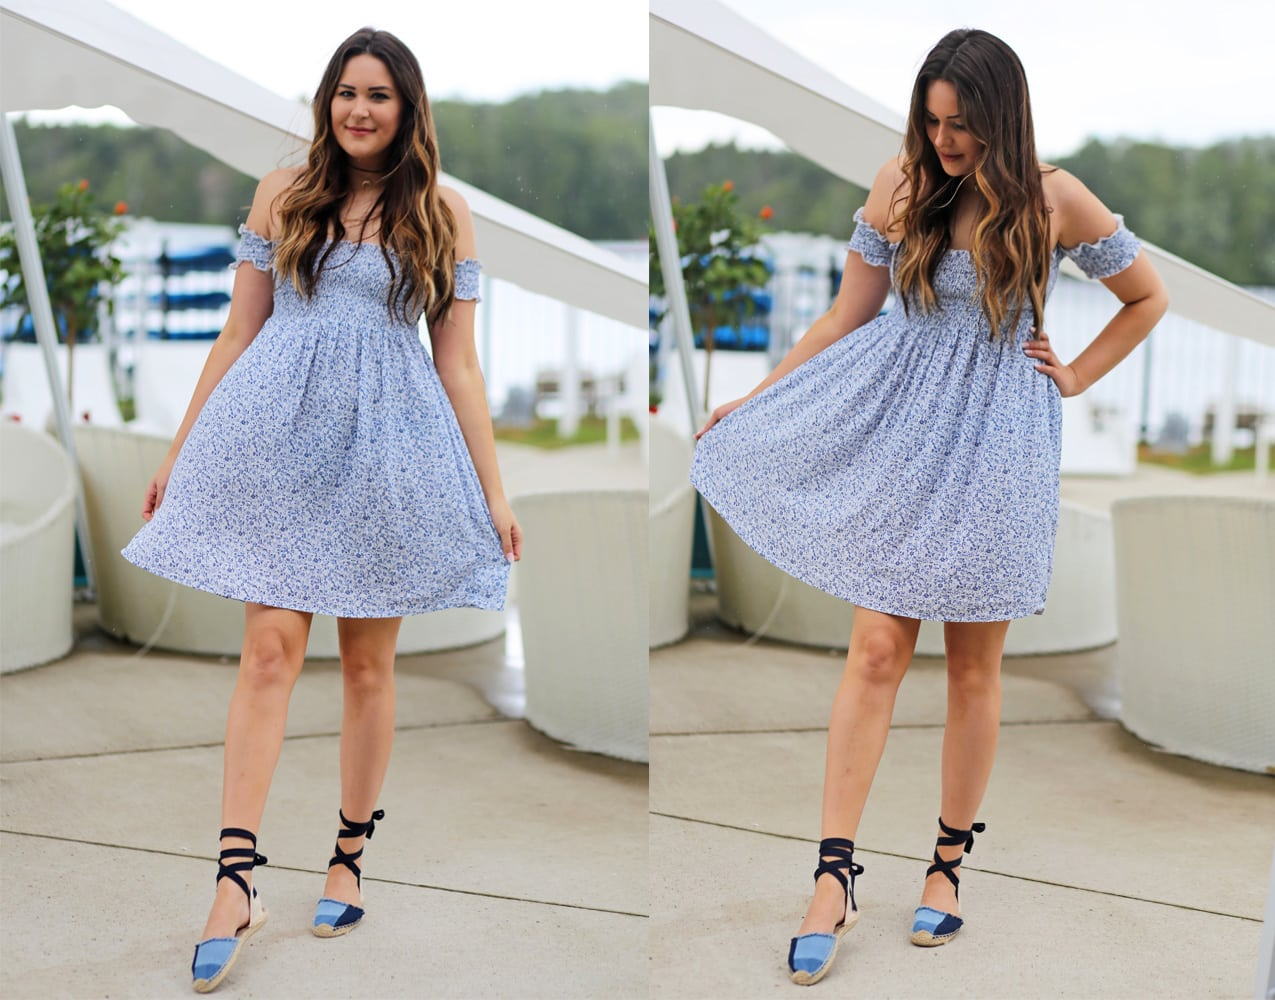 Mash Elle blogger pool blue white floral dress blue shoes summer outfit